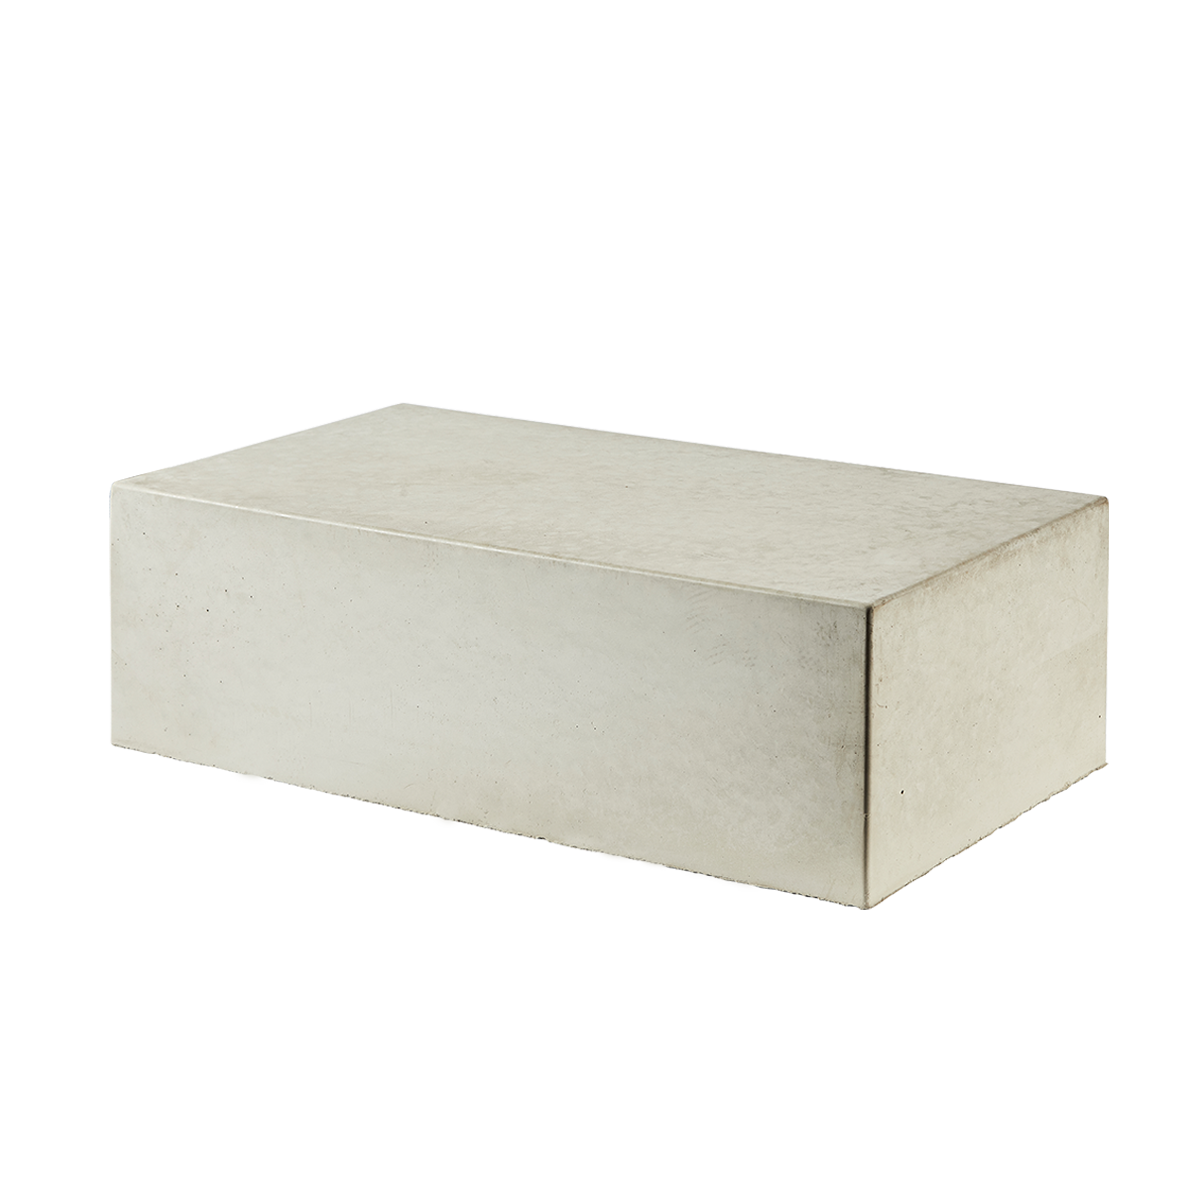 SoftLine 60x30x18 cm Lys sand Trappetrin Glat overflade